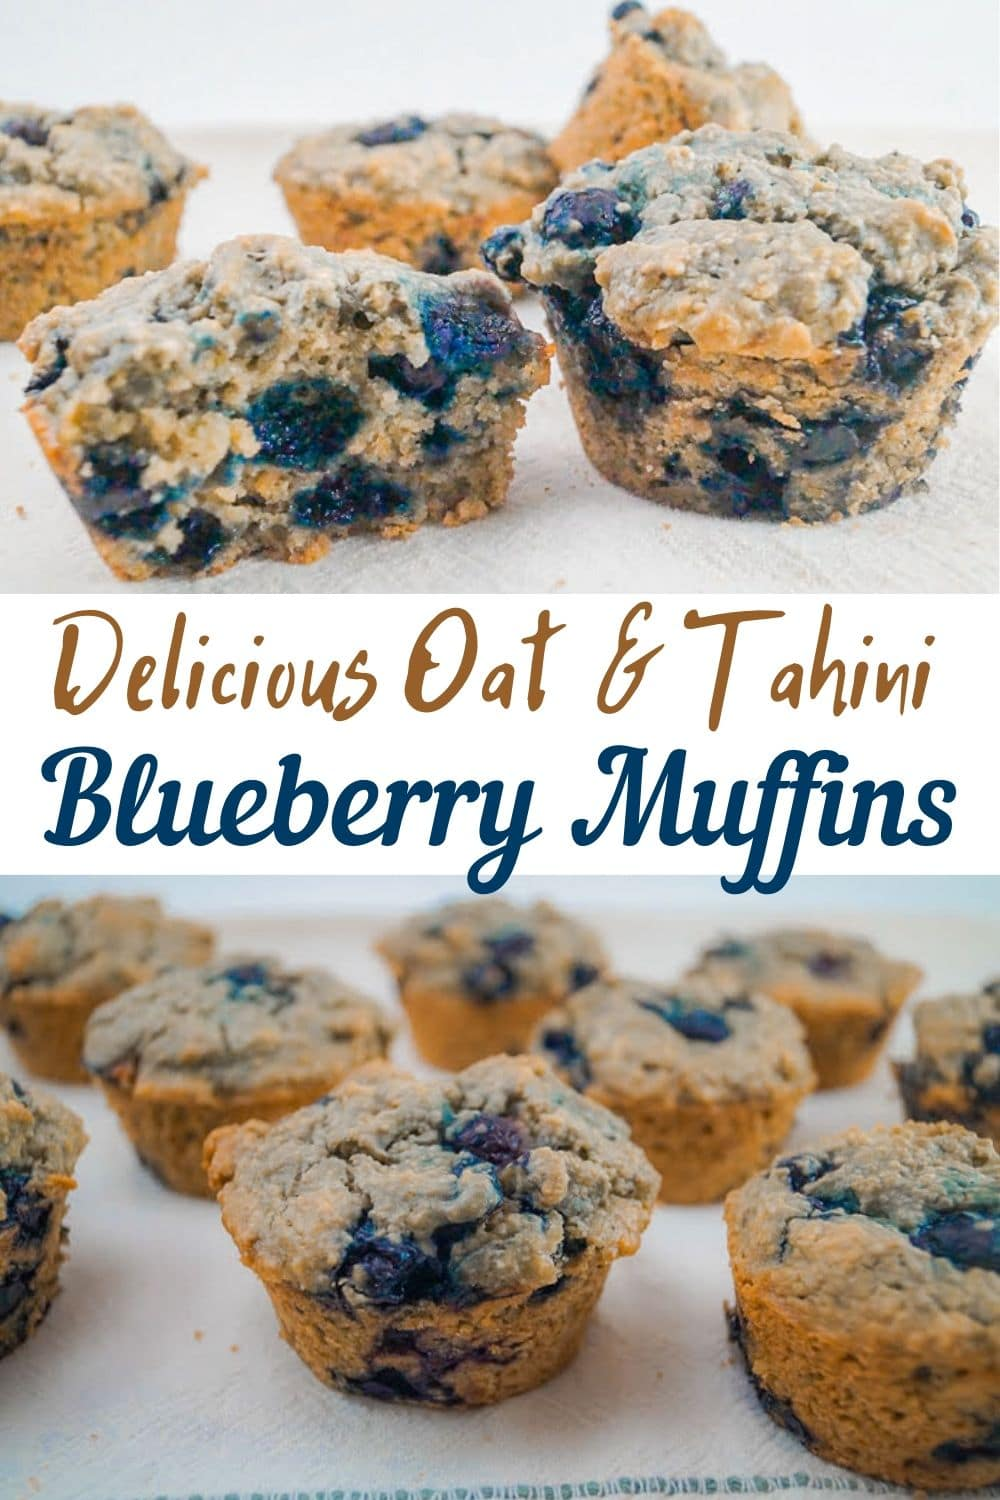 Delicious Oat & Tahini Blueberry Muffins